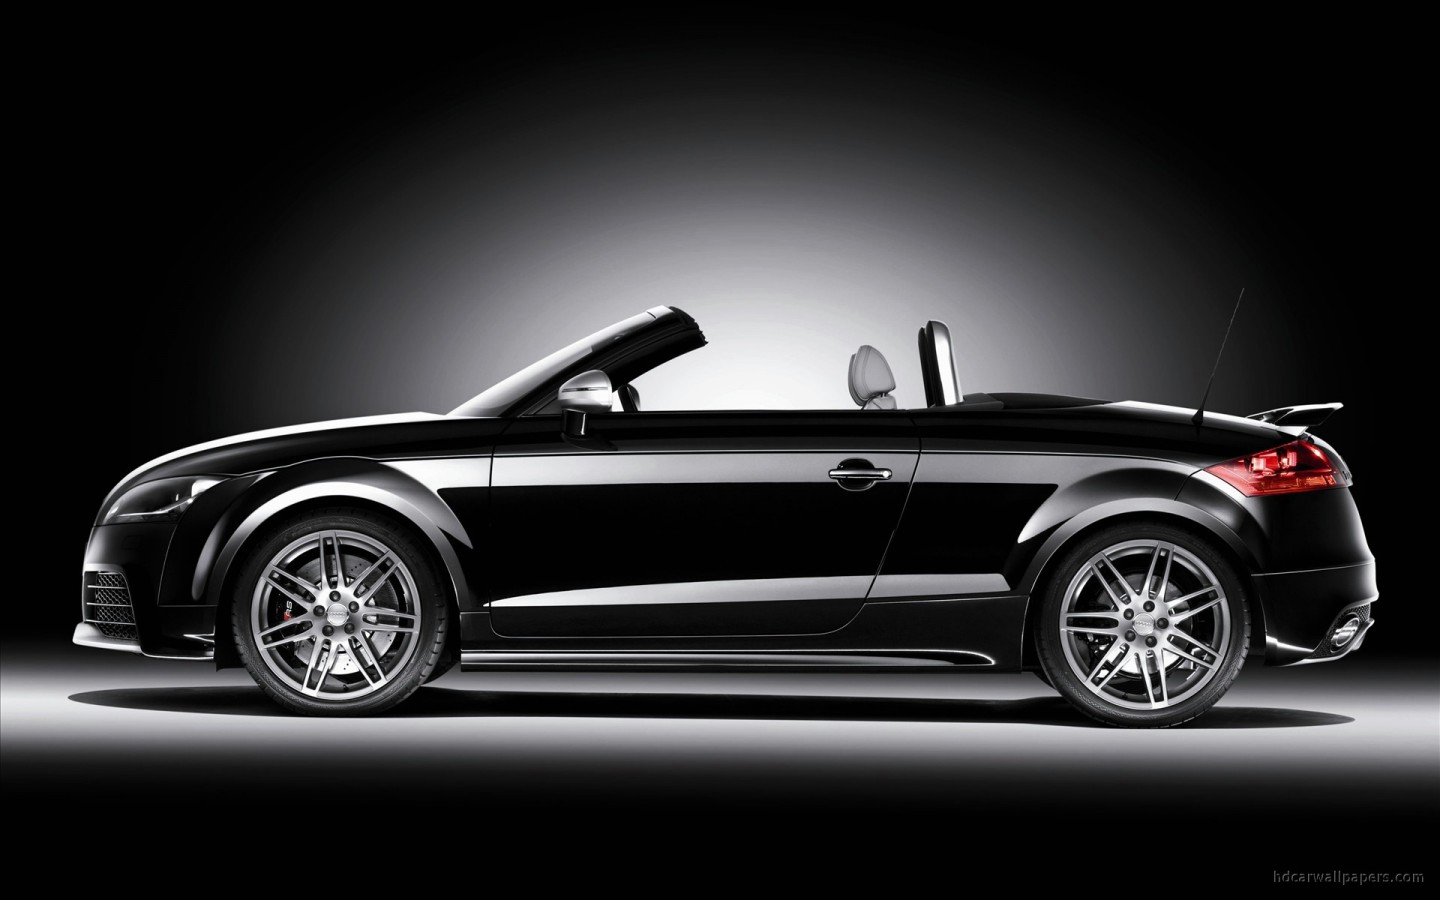 2010 audi tt rs roadster 3 wallpaper in 1440x900 resolution. Black Bedroom Furniture Sets. Home Design Ideas